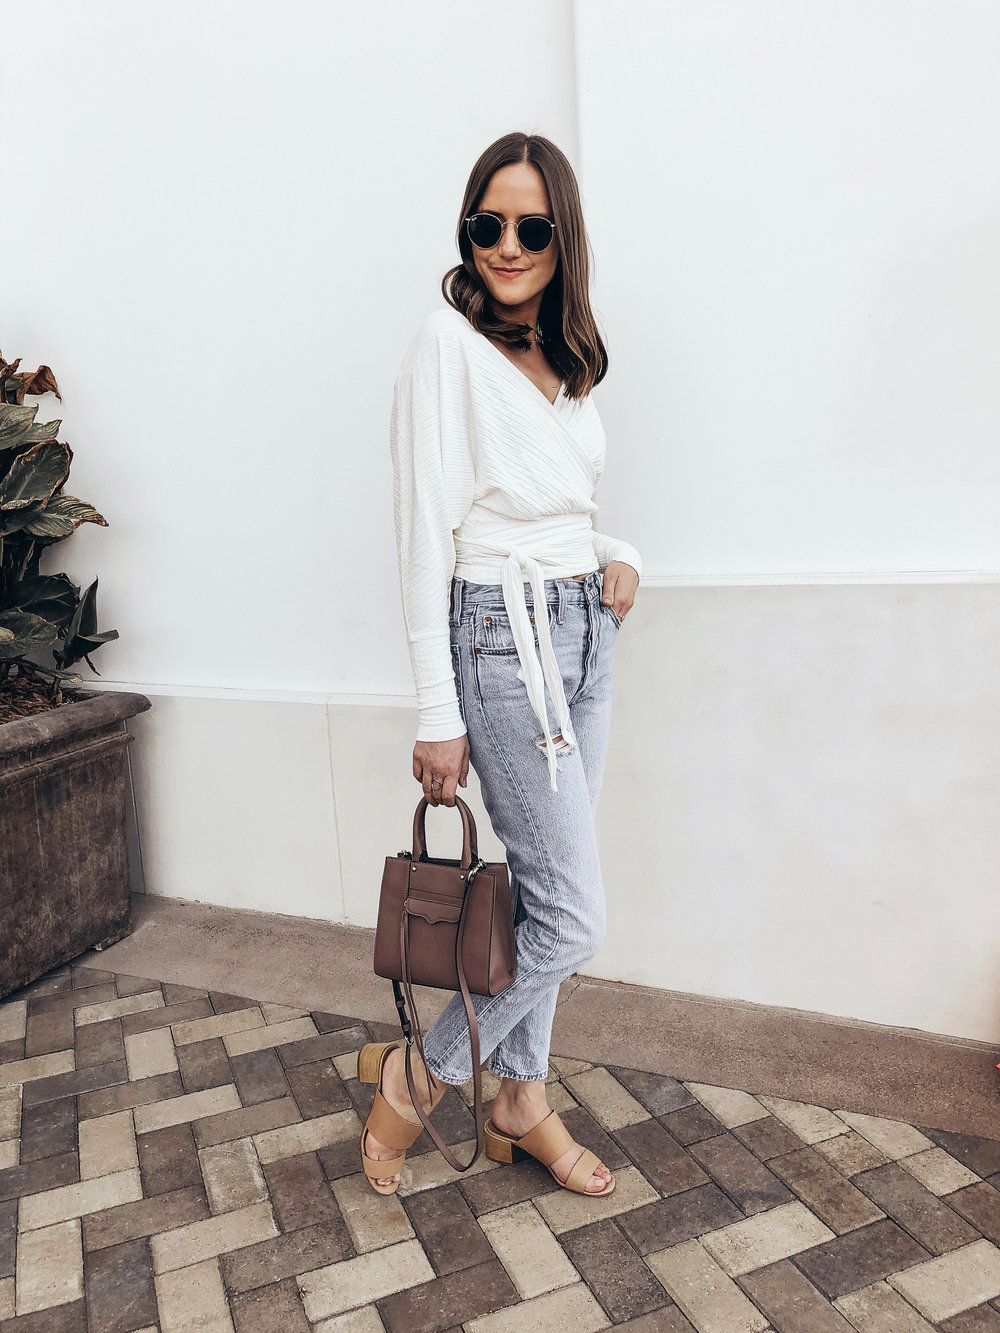 Shop the Look Below.  Free People Top  |  Levi's Jeans  |  Rebecca Minkoff Bag  |  Ray-Ban Sunglasses